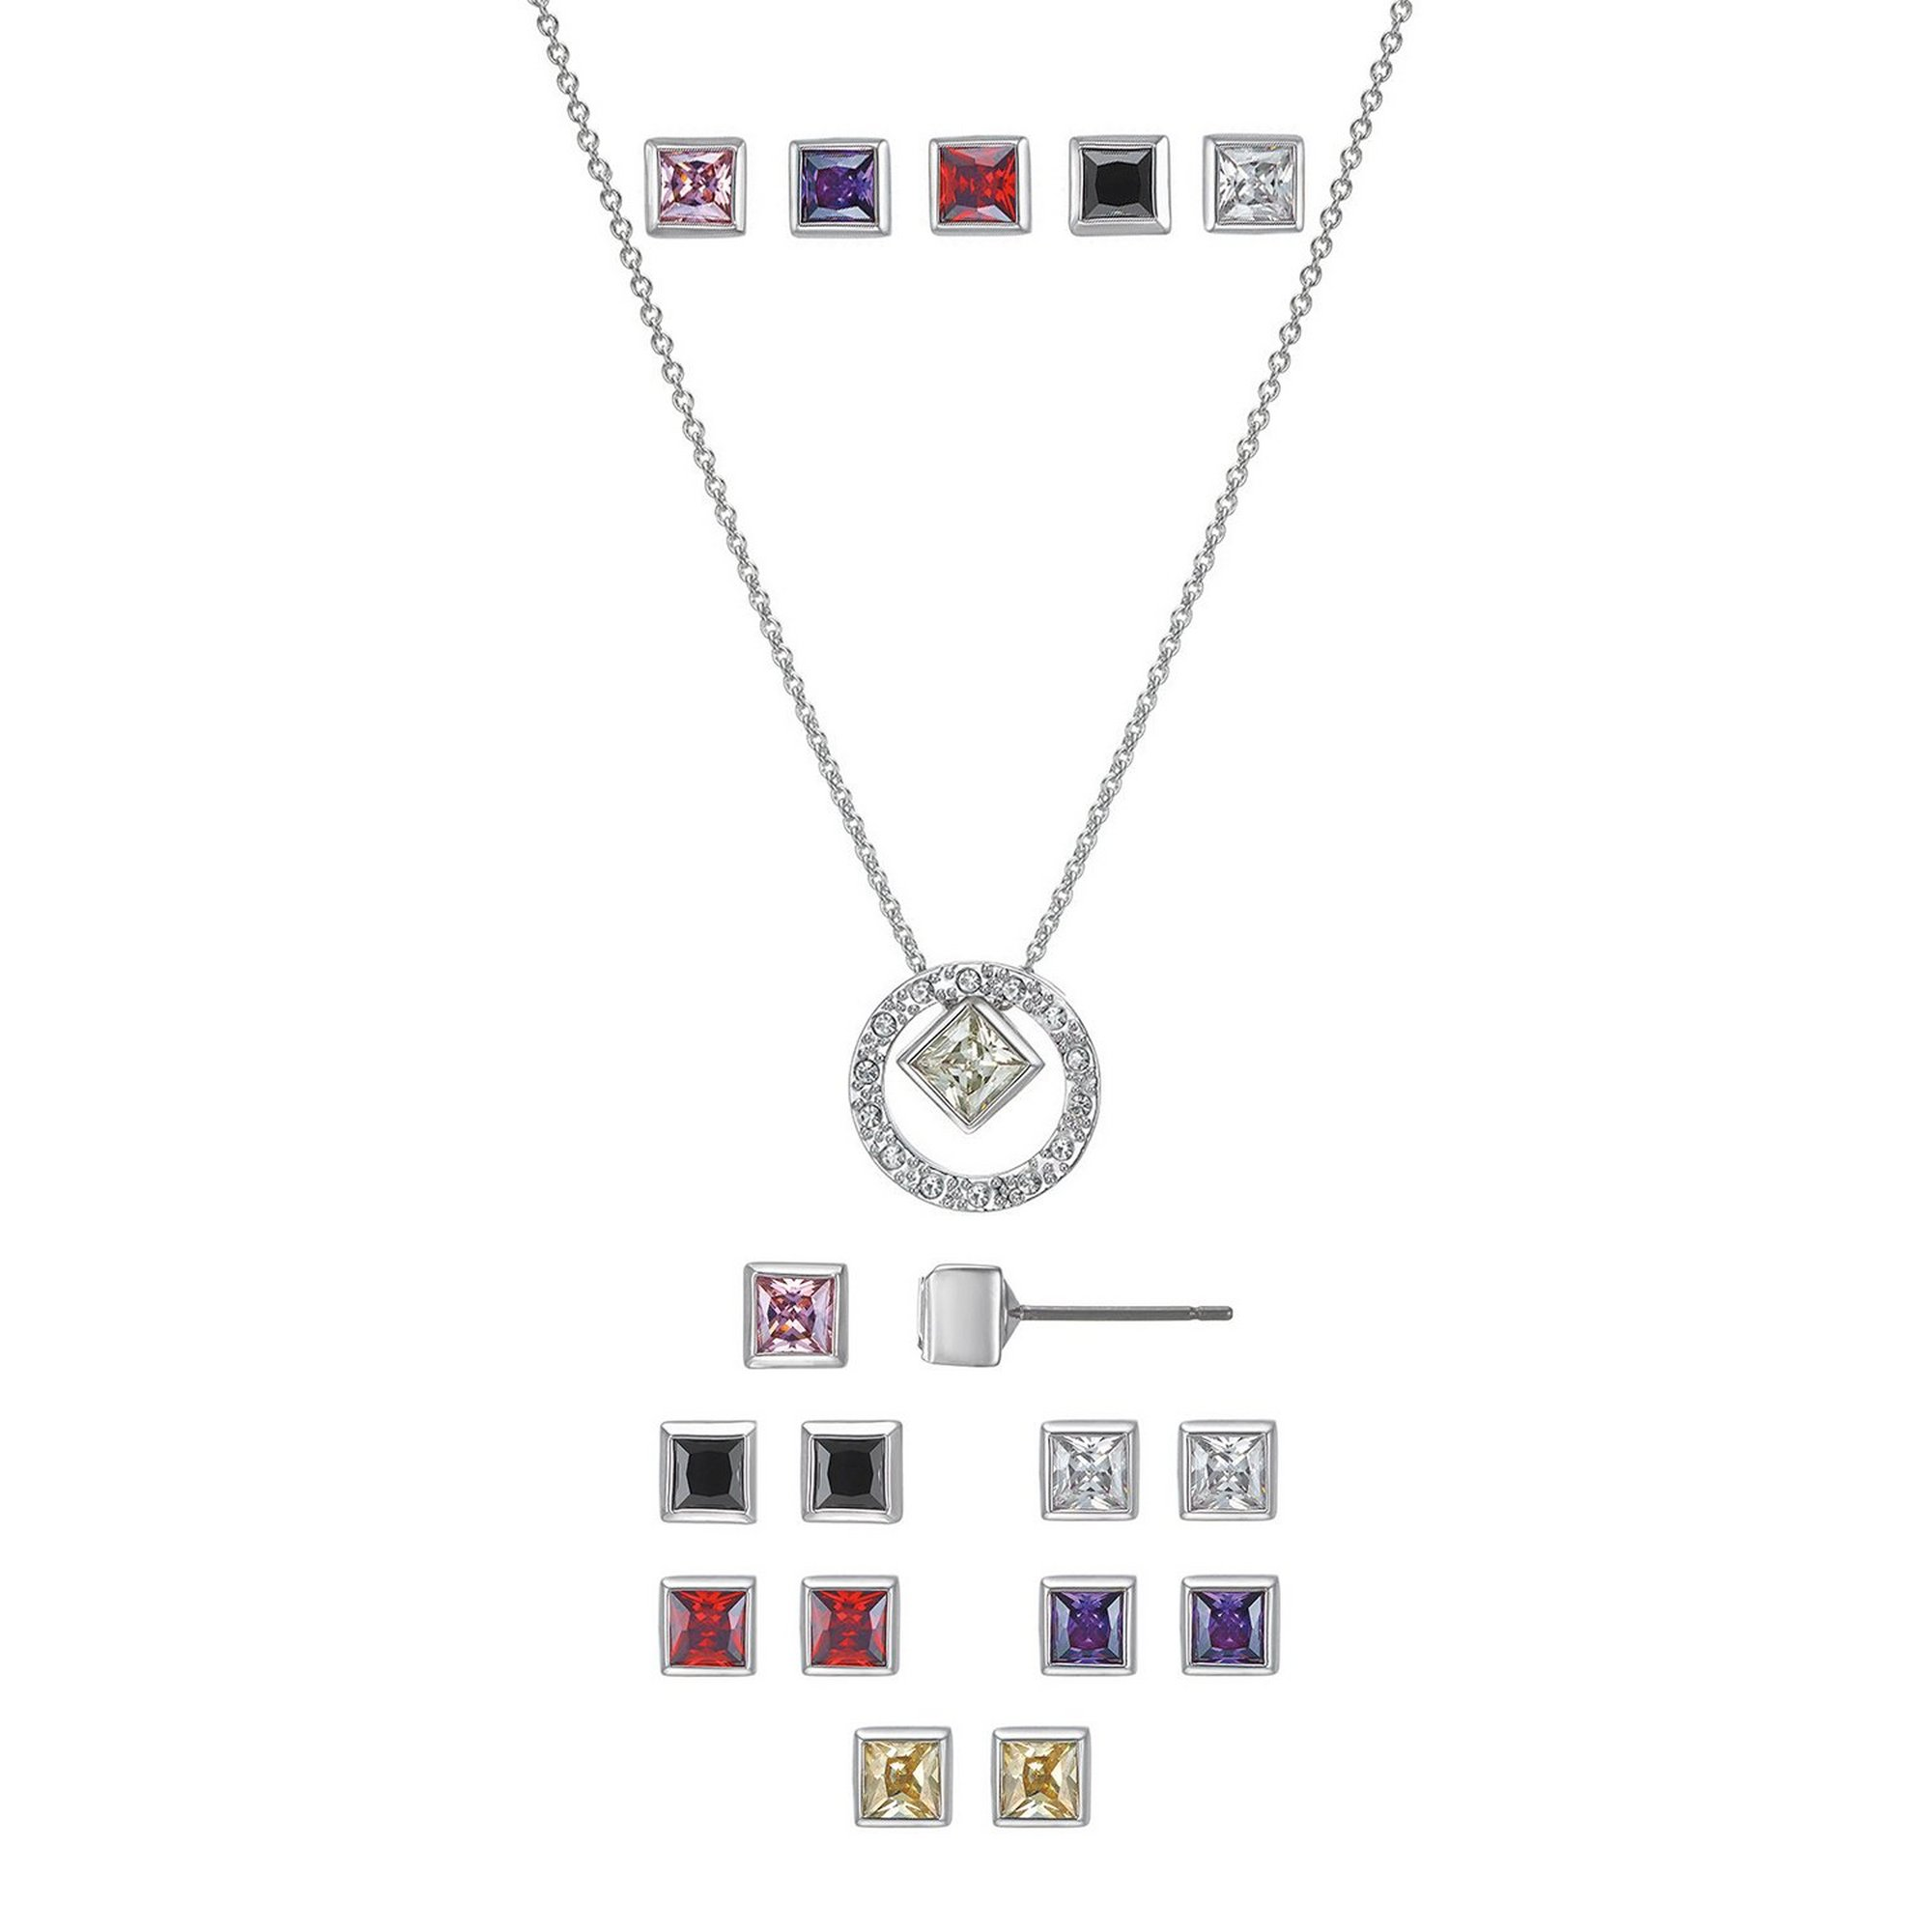 Image of Buckley London Rhodium Interchangeable Pendant and Earrings Set